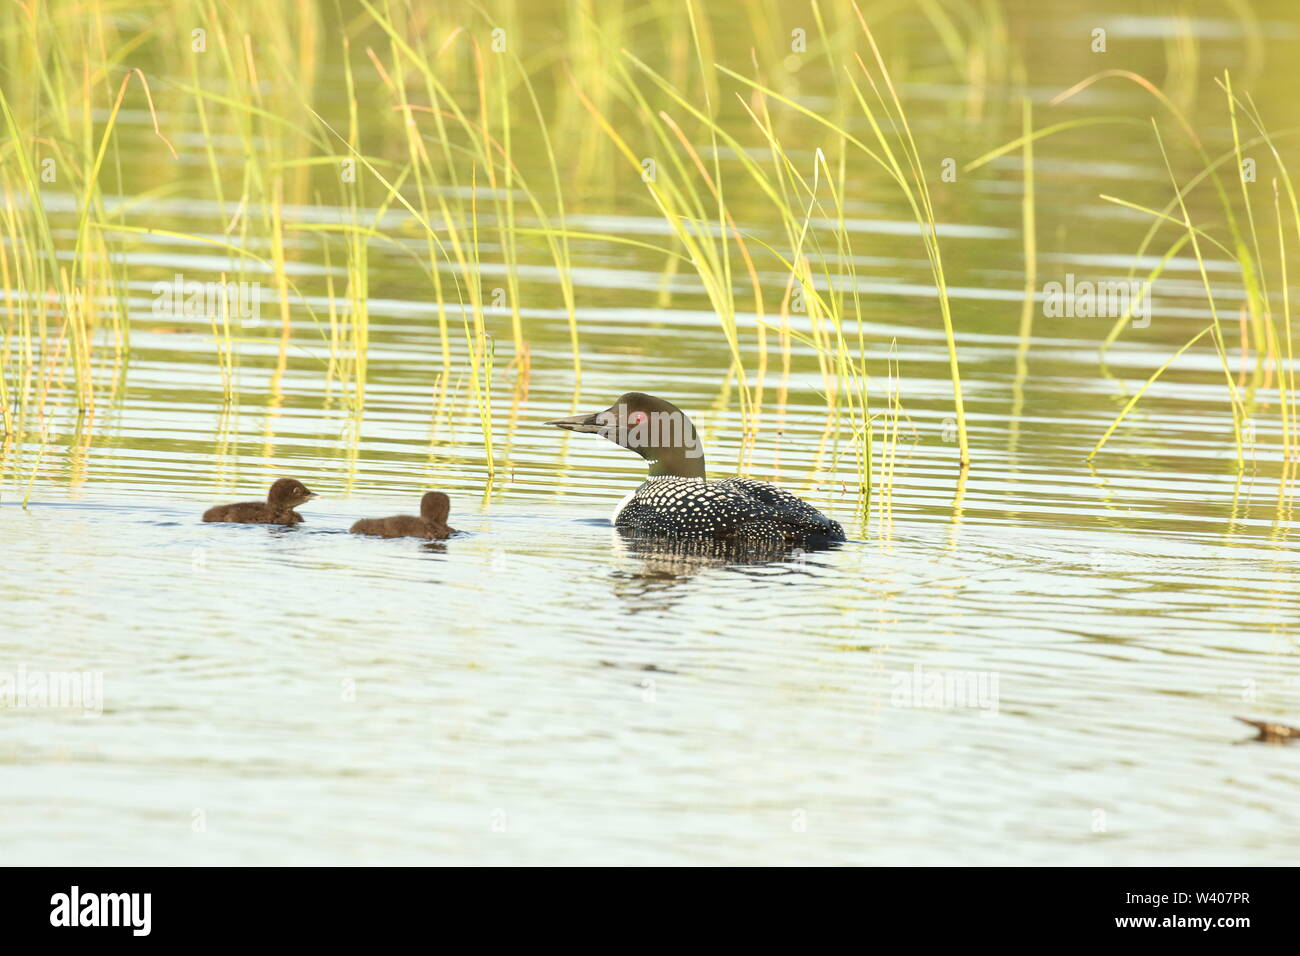 Common loons on lake in Eastern Ontario, Canada - Stock Image